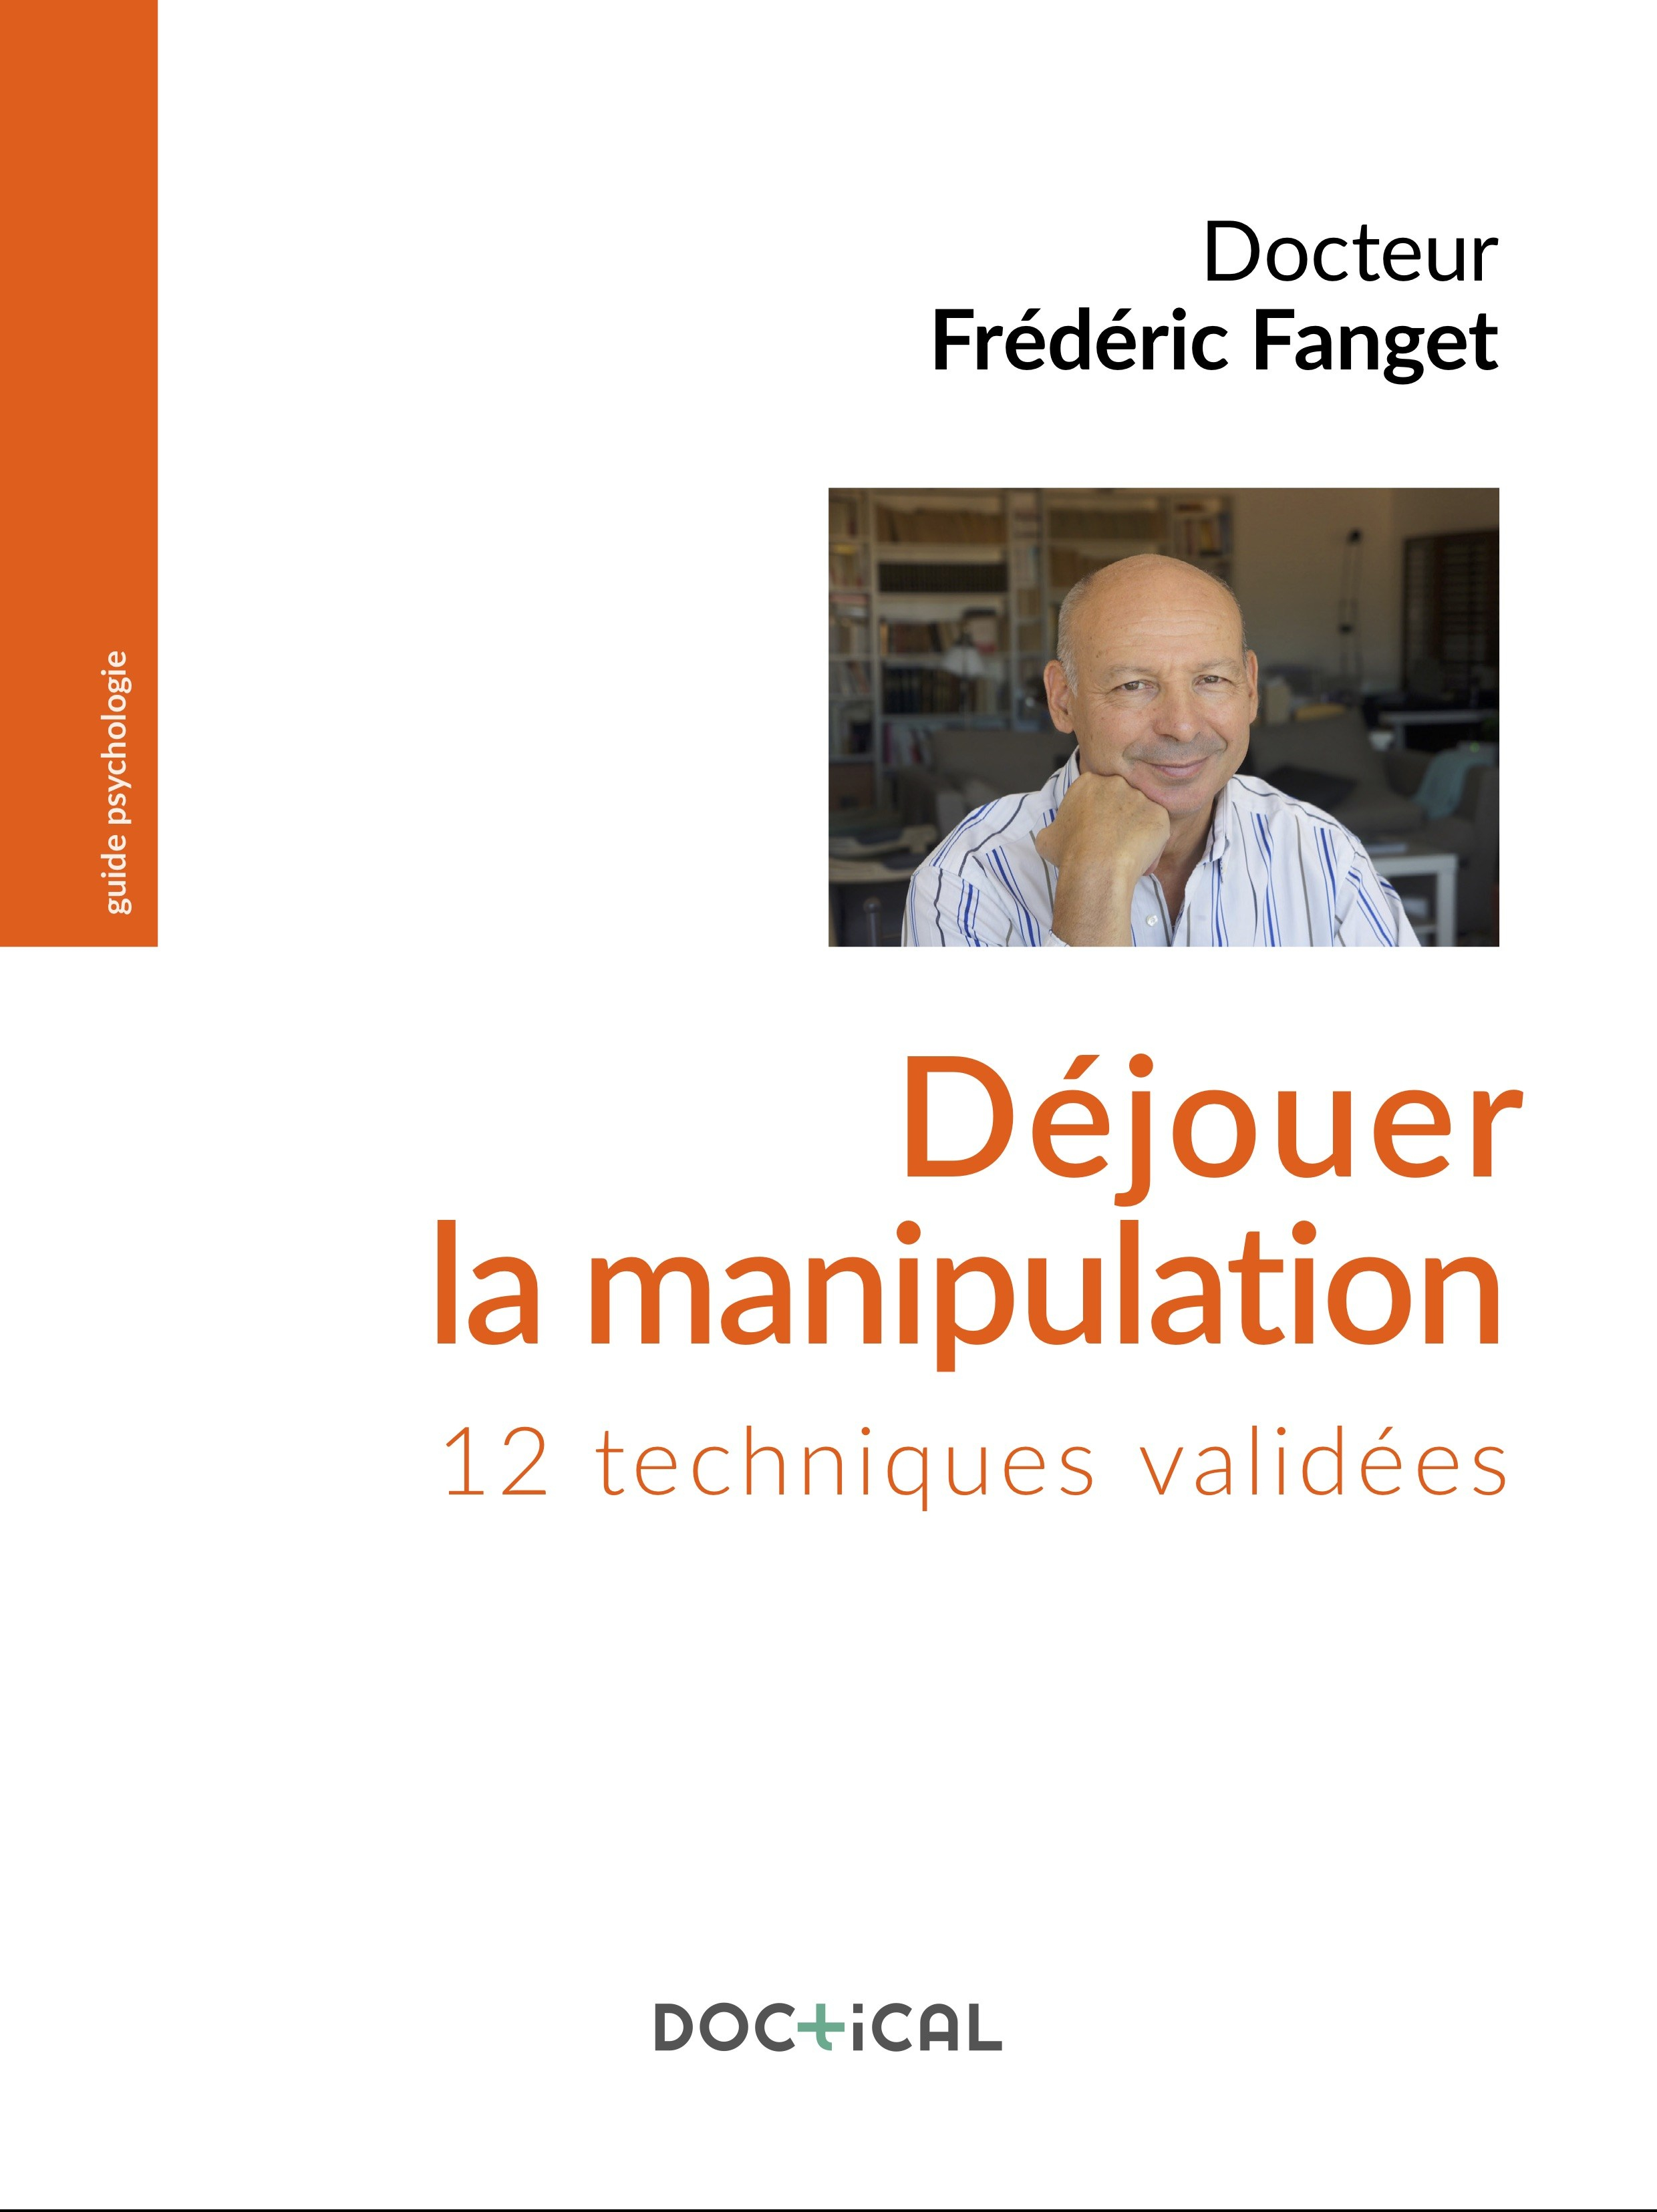 Doctical-Dejouer-la-manipulation-couv